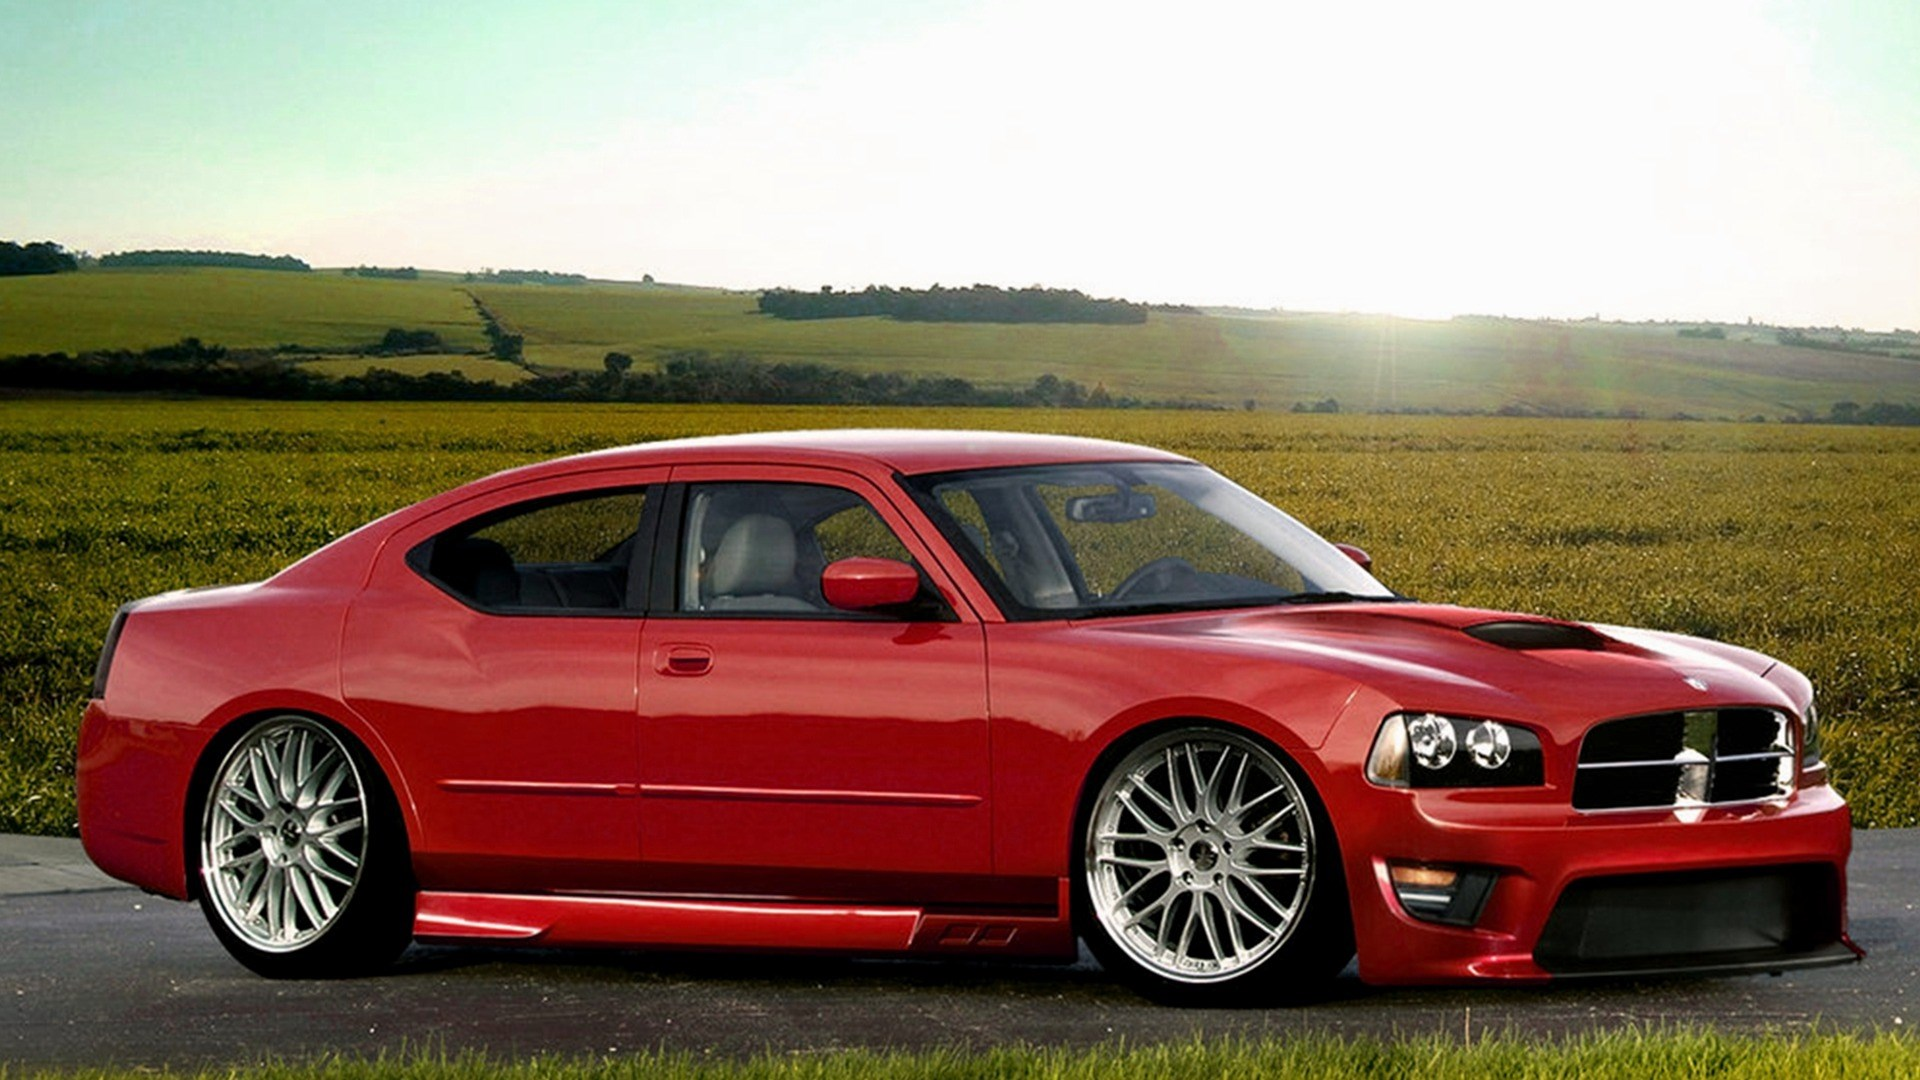 1920x1080-px-dodge-pic-to-download-by-Deshaun-Waite-wallpaper-wp360845